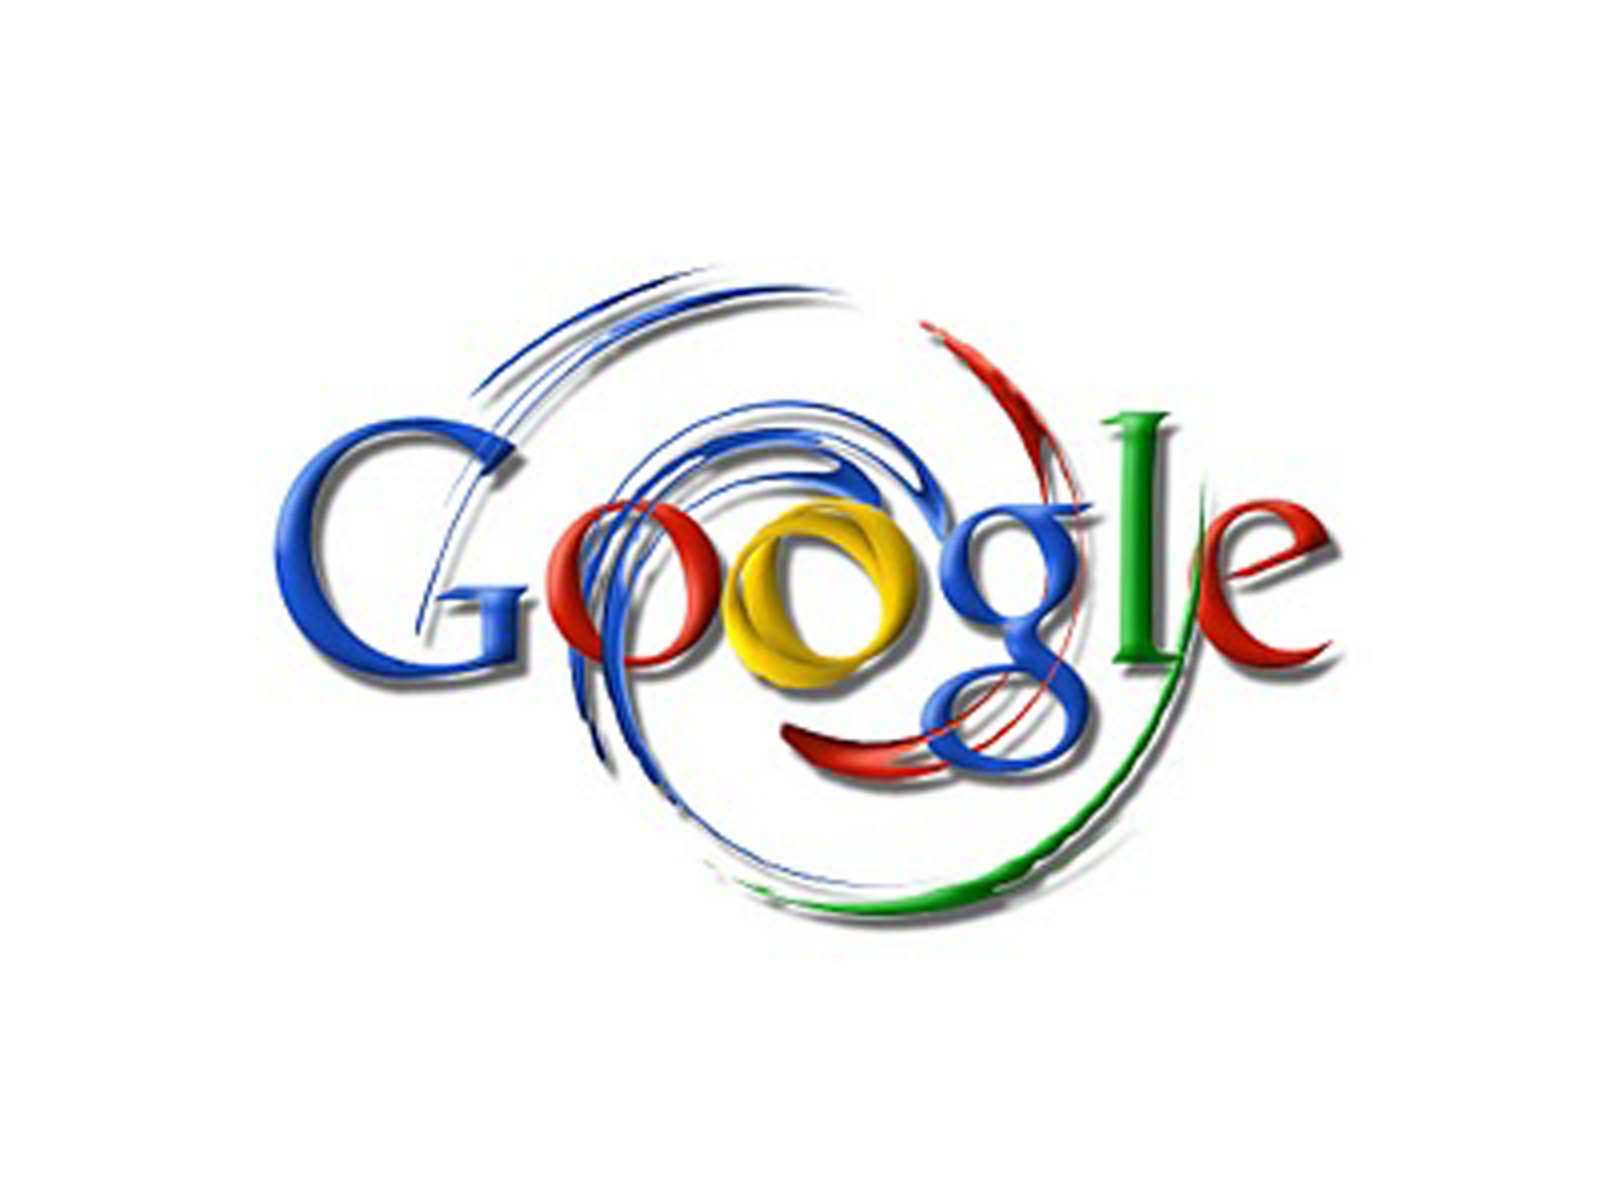 wallpapers: Free Google Desktop Wallpapers Pictures Google